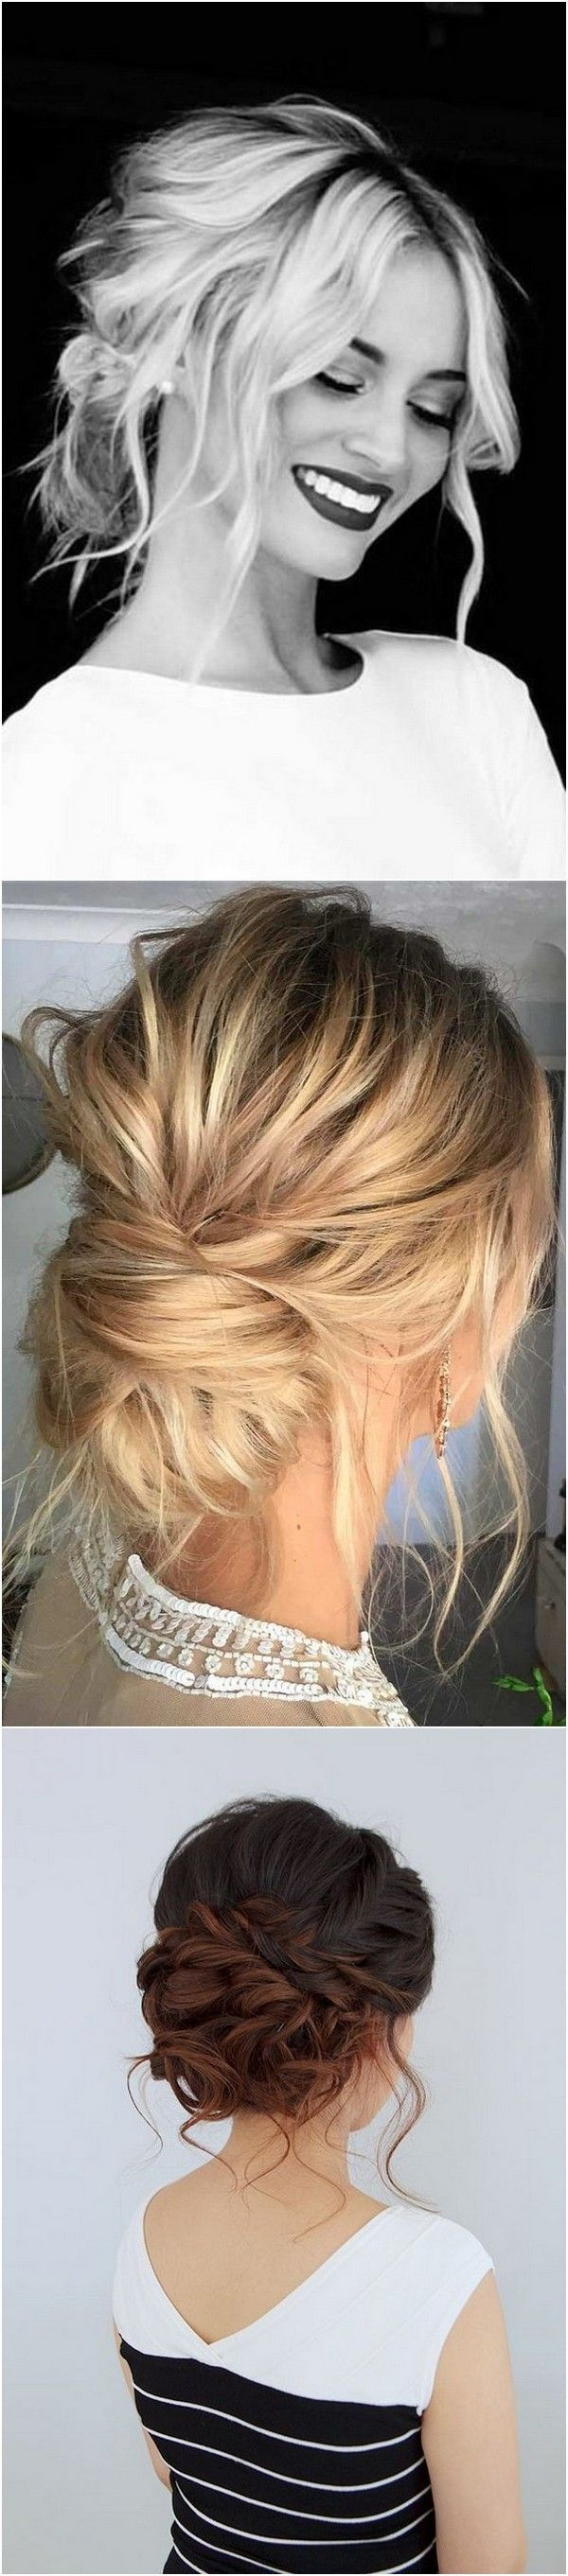 awesome Updos Bridal Hairstyles for Medium Length Hair #MessyHairstylesMedium